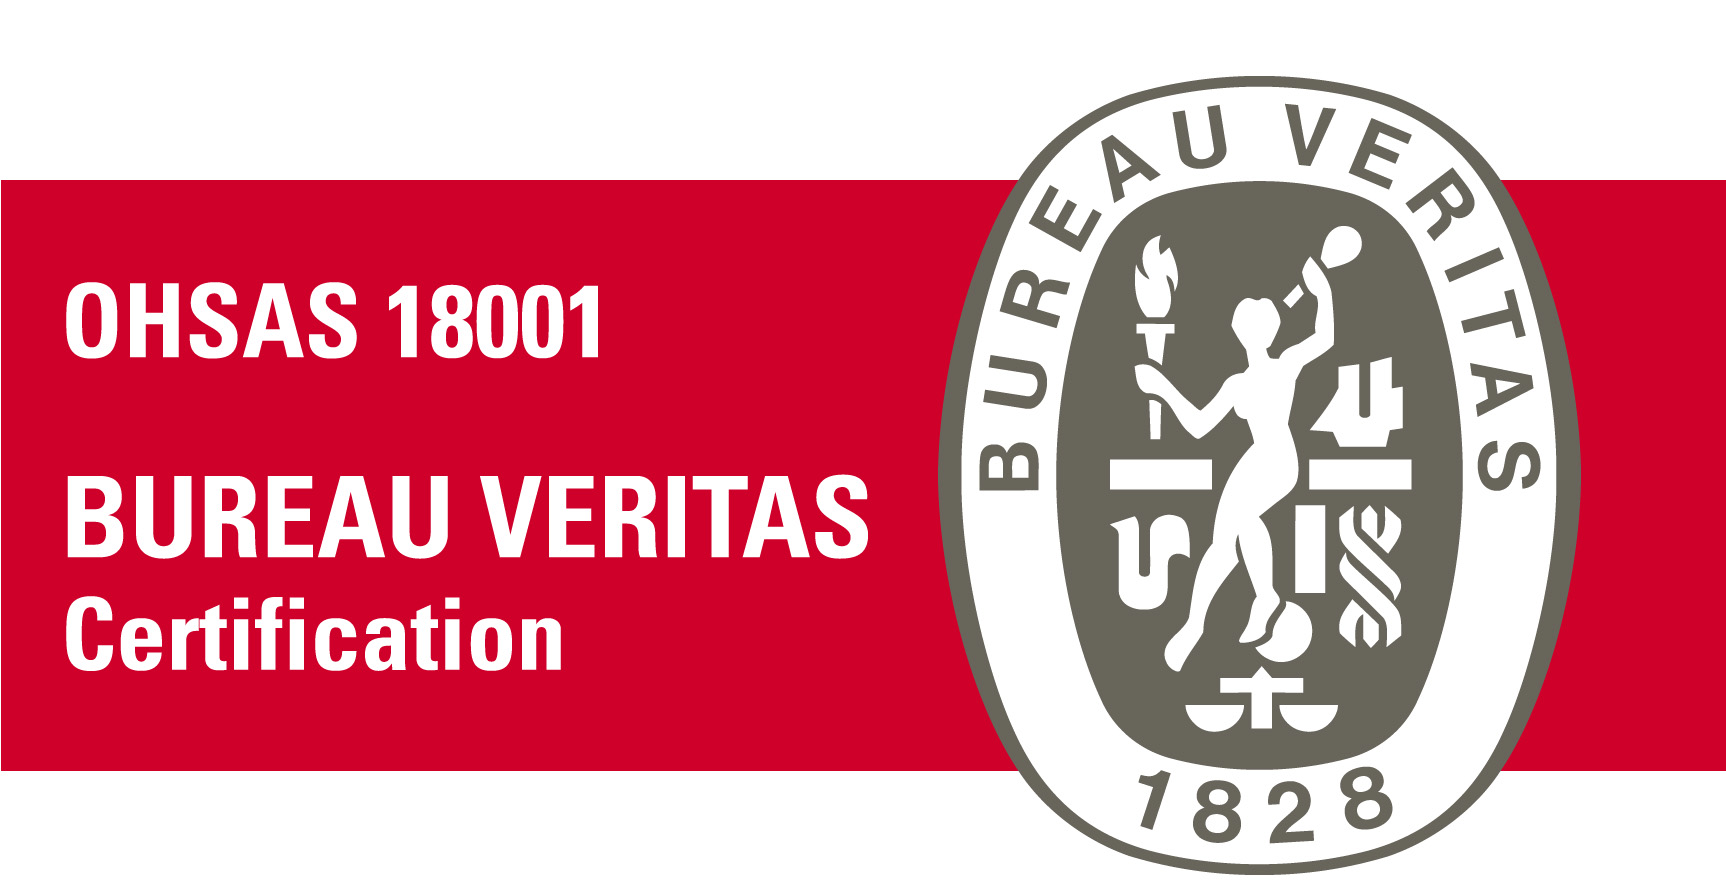 LOGO-BV_Certification_OHSAS-18001